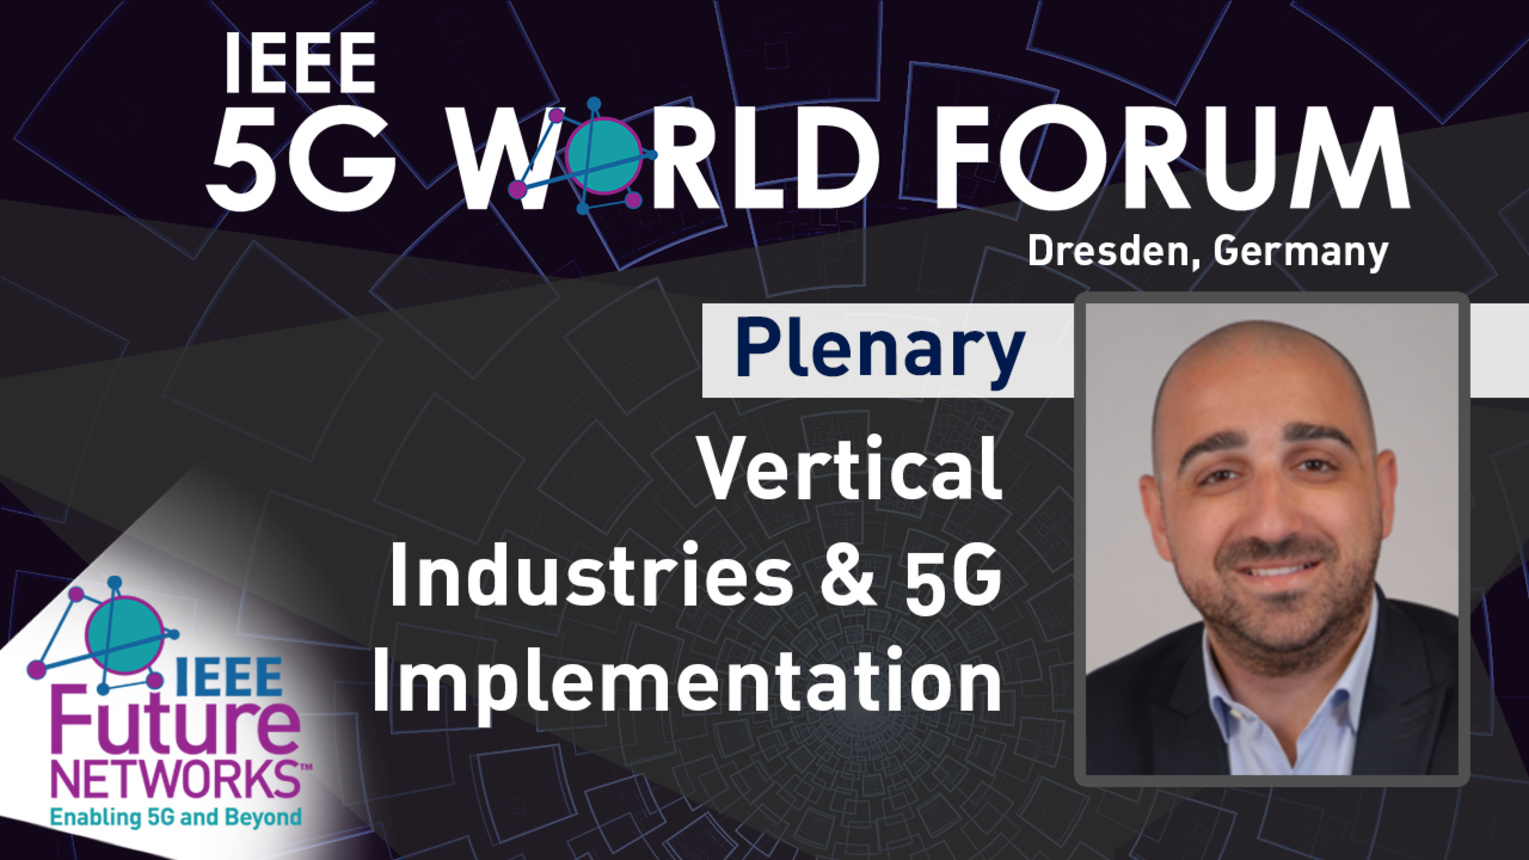 Vertical Industries & 5G Implementation - Fouad El Mernissi - 5G World Forum Dresden, 2019